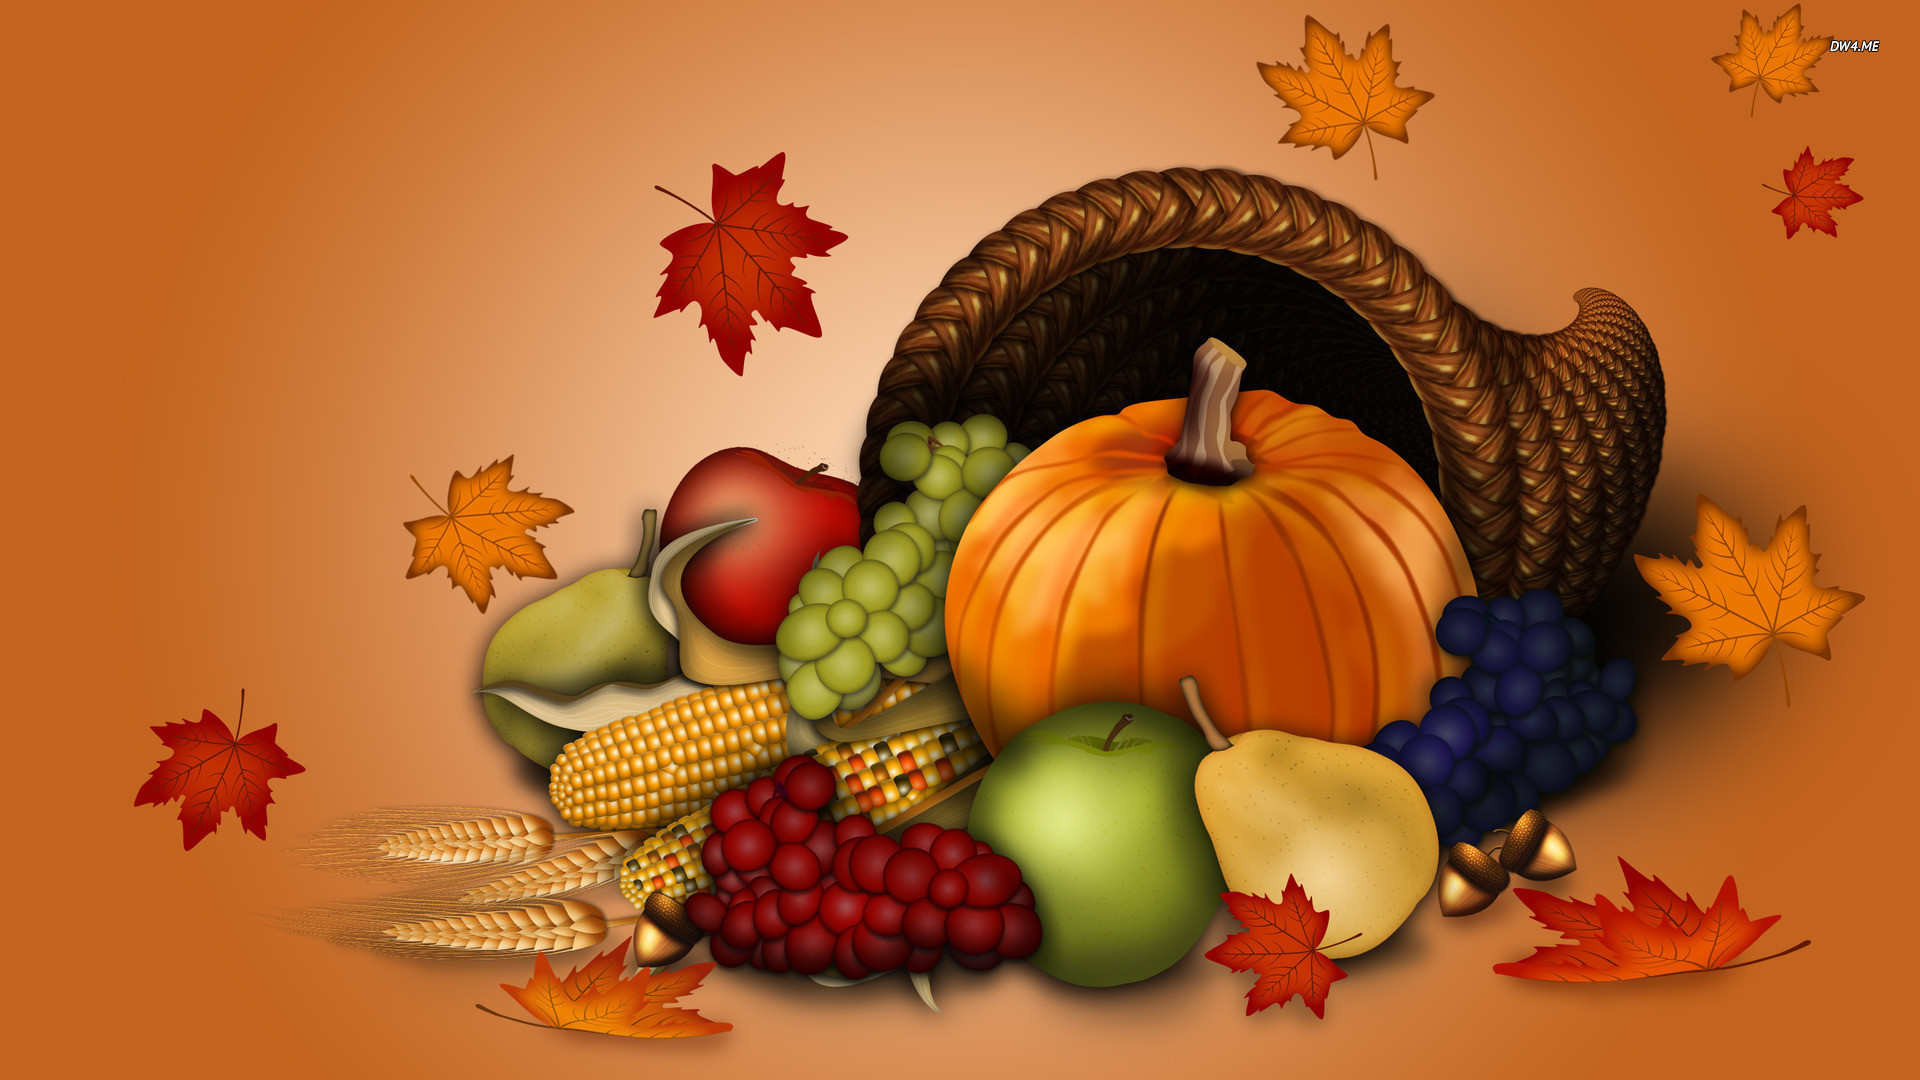 Res: 1920x1080, Thanksgiving Background Photos 2016 | Wallpapers, Backgrounds .